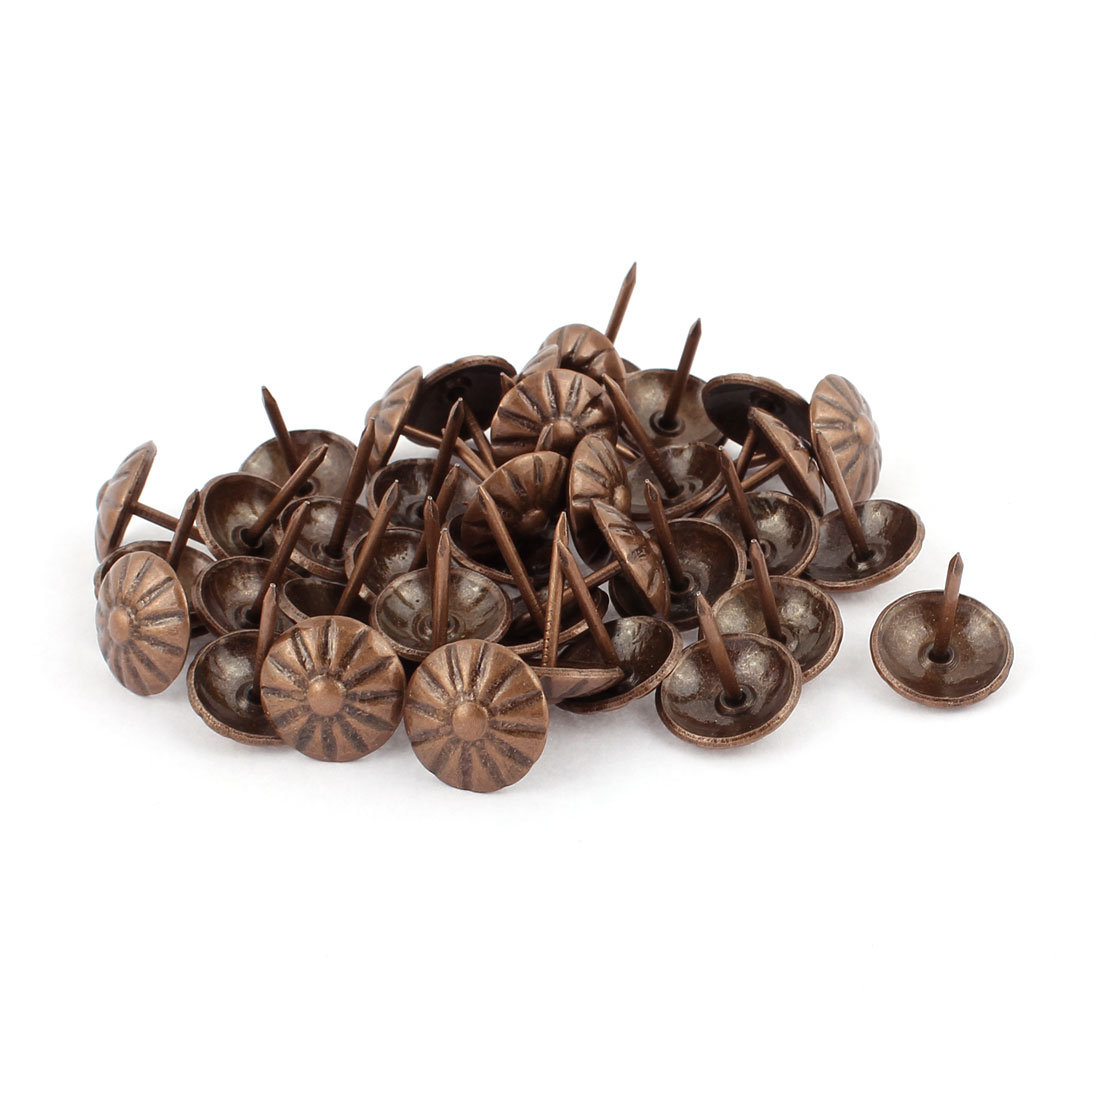 16mm Dia Daisy Upholstery Nail Thumb Tack Pushpin Doornail Copper Tone 40PCS